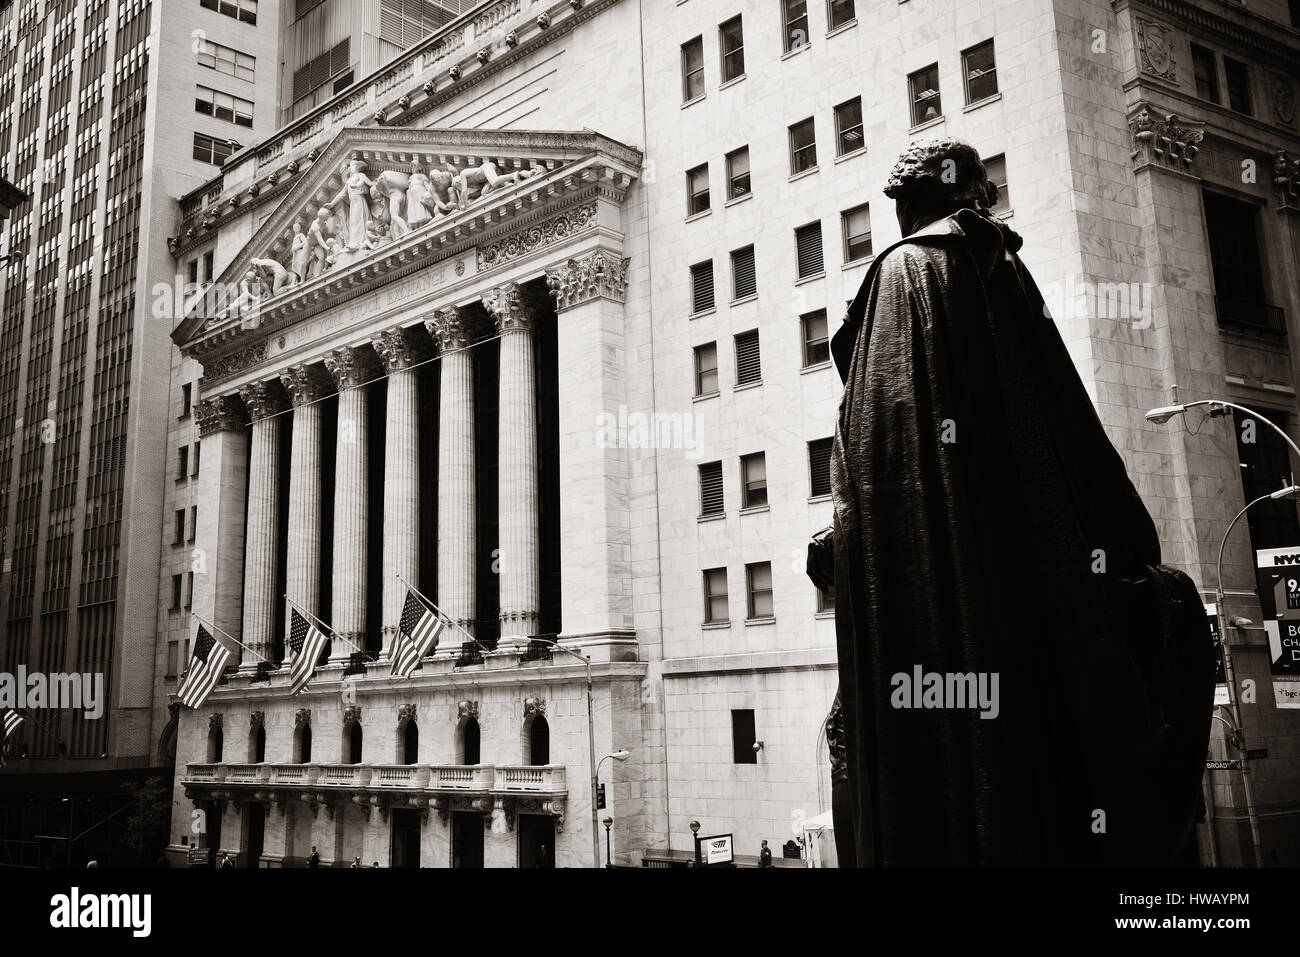 NEW YORK CITY - SEP 5: Wall Street with skyscrapers on September 5, 2014 in Manhattan, New York City. Wall Street - Stock Image